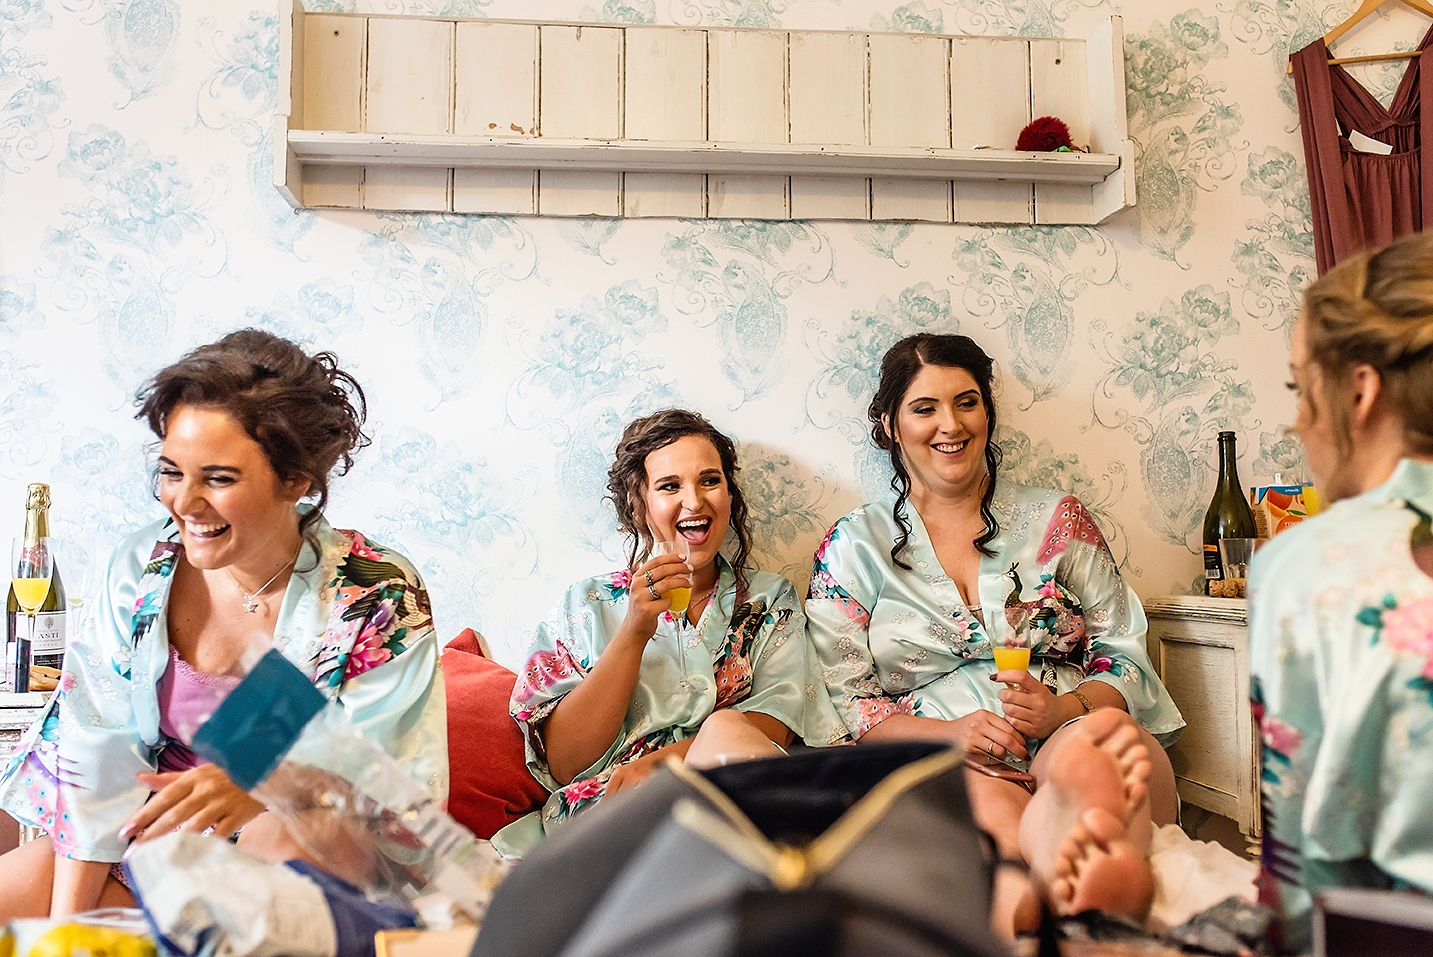 Bridesmaids in their dressing gown toasting during wedding preparation